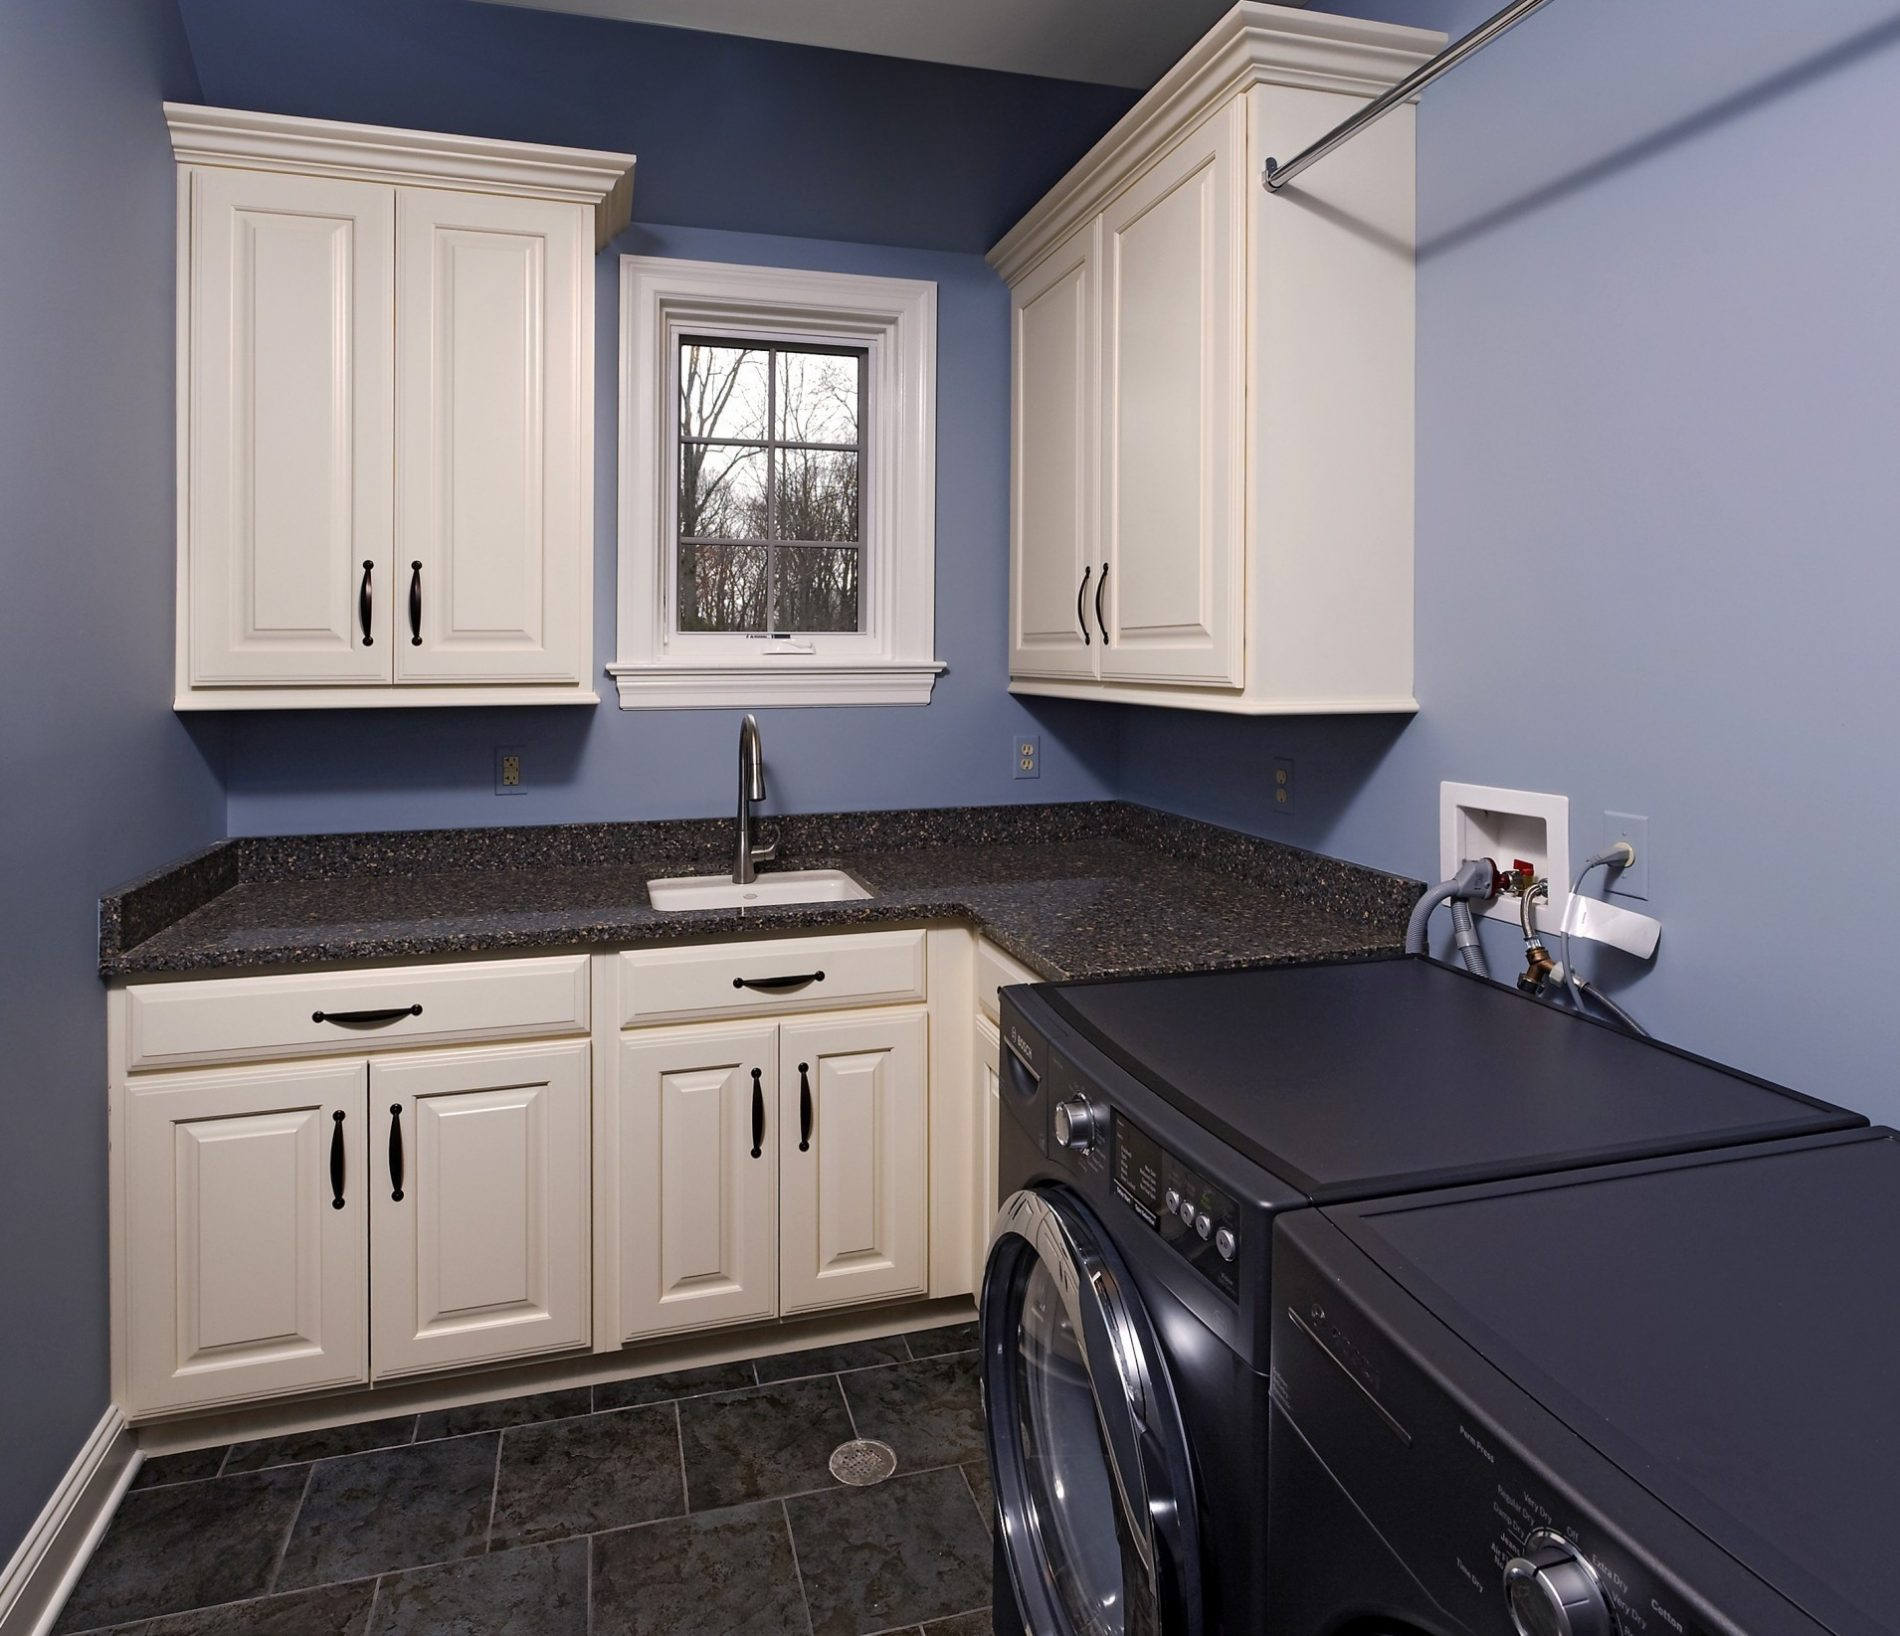 New Kitchen Cabinets | Laundry, Bath, Home Office ... on Laundry Cabinets  id=91628